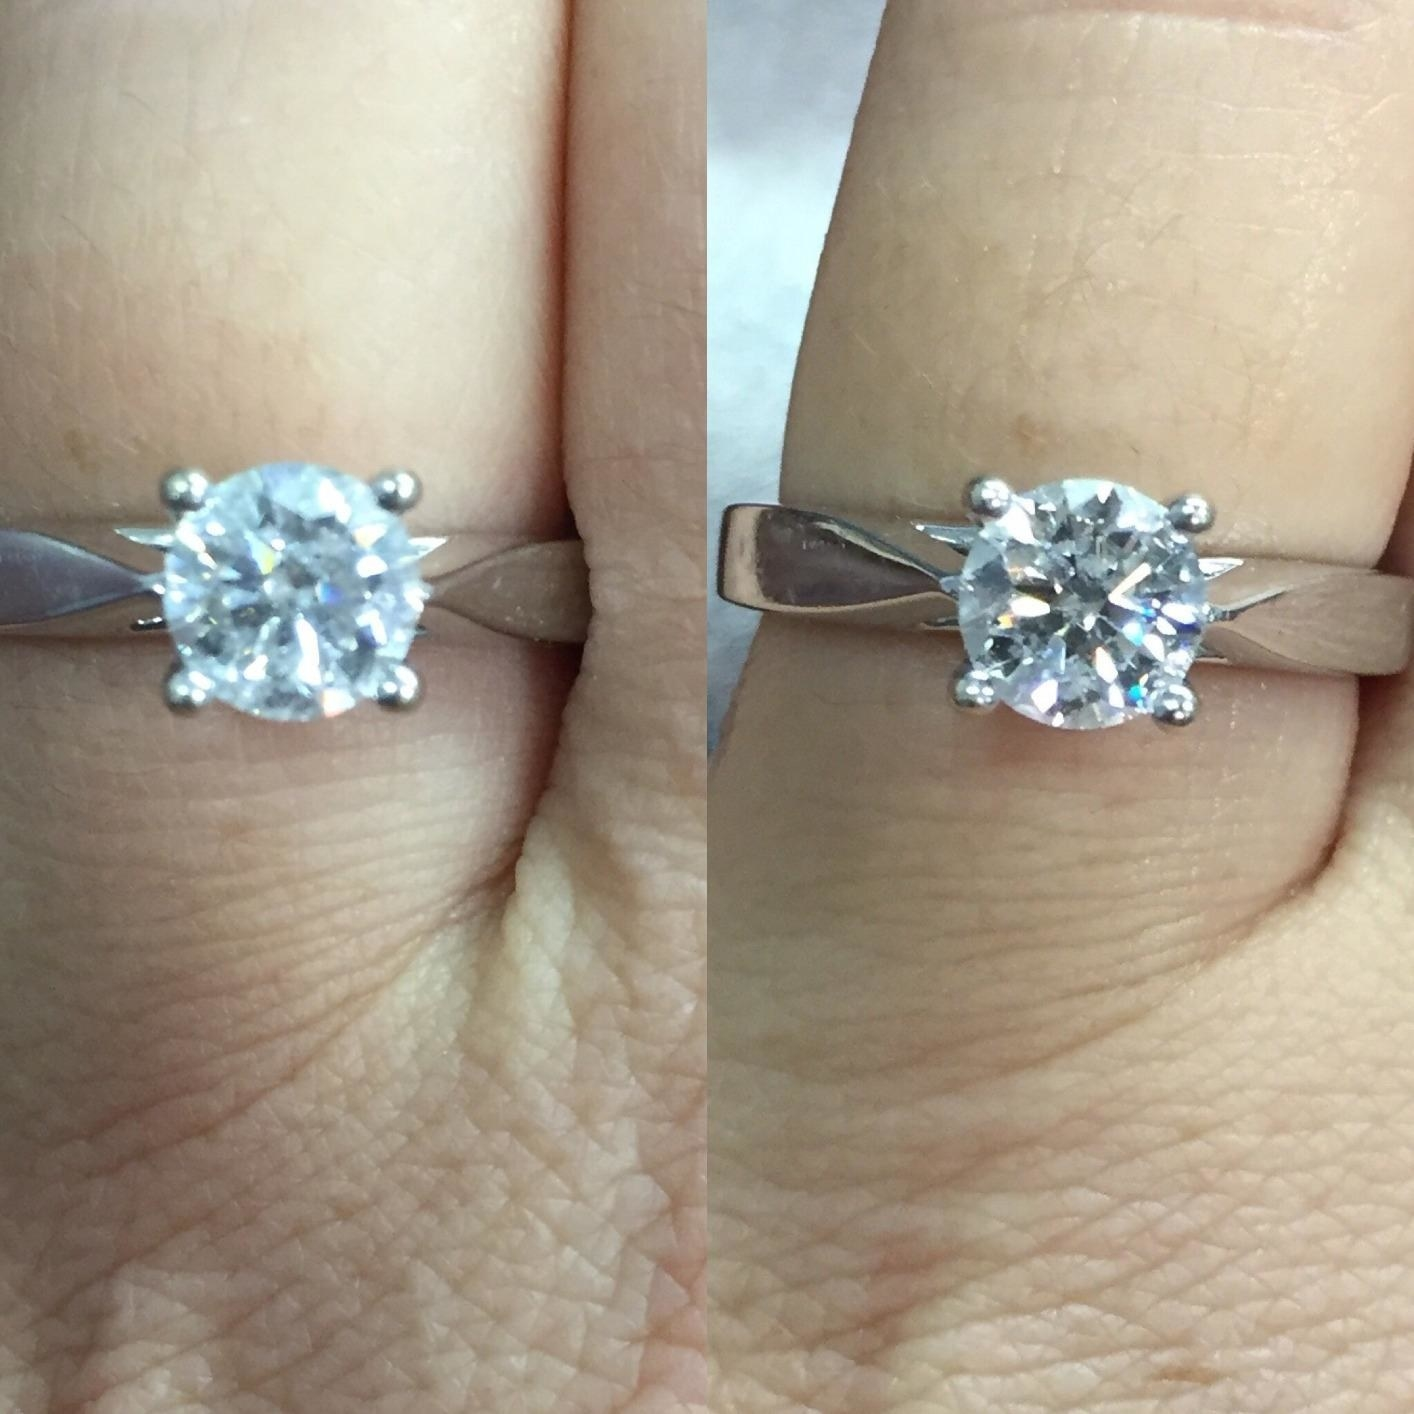 A reviewer's solitaire ring: on the left before cleaning looking cloudy, on the right clean with defined facets and sparkle